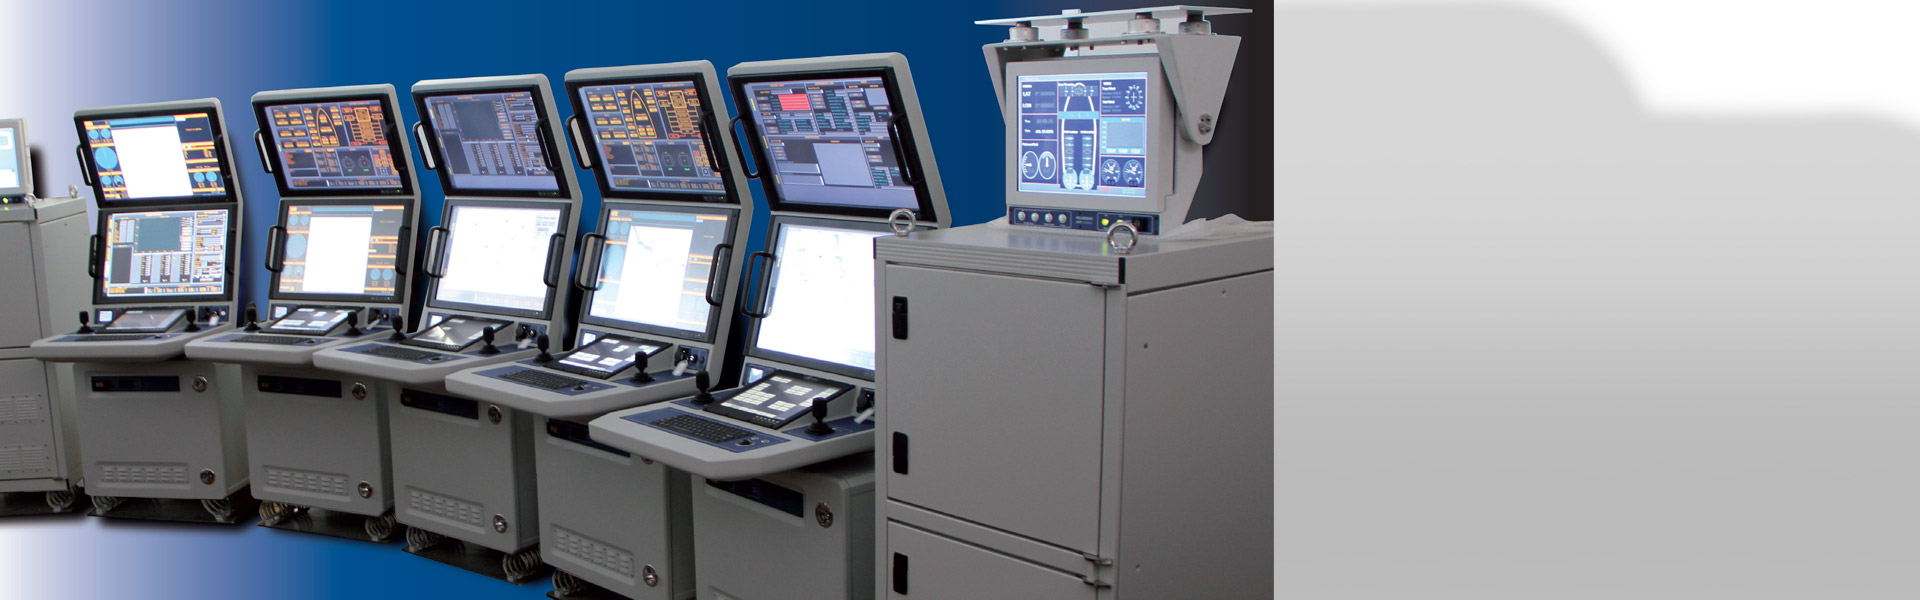 Monitoring and Control Console Systems ROV